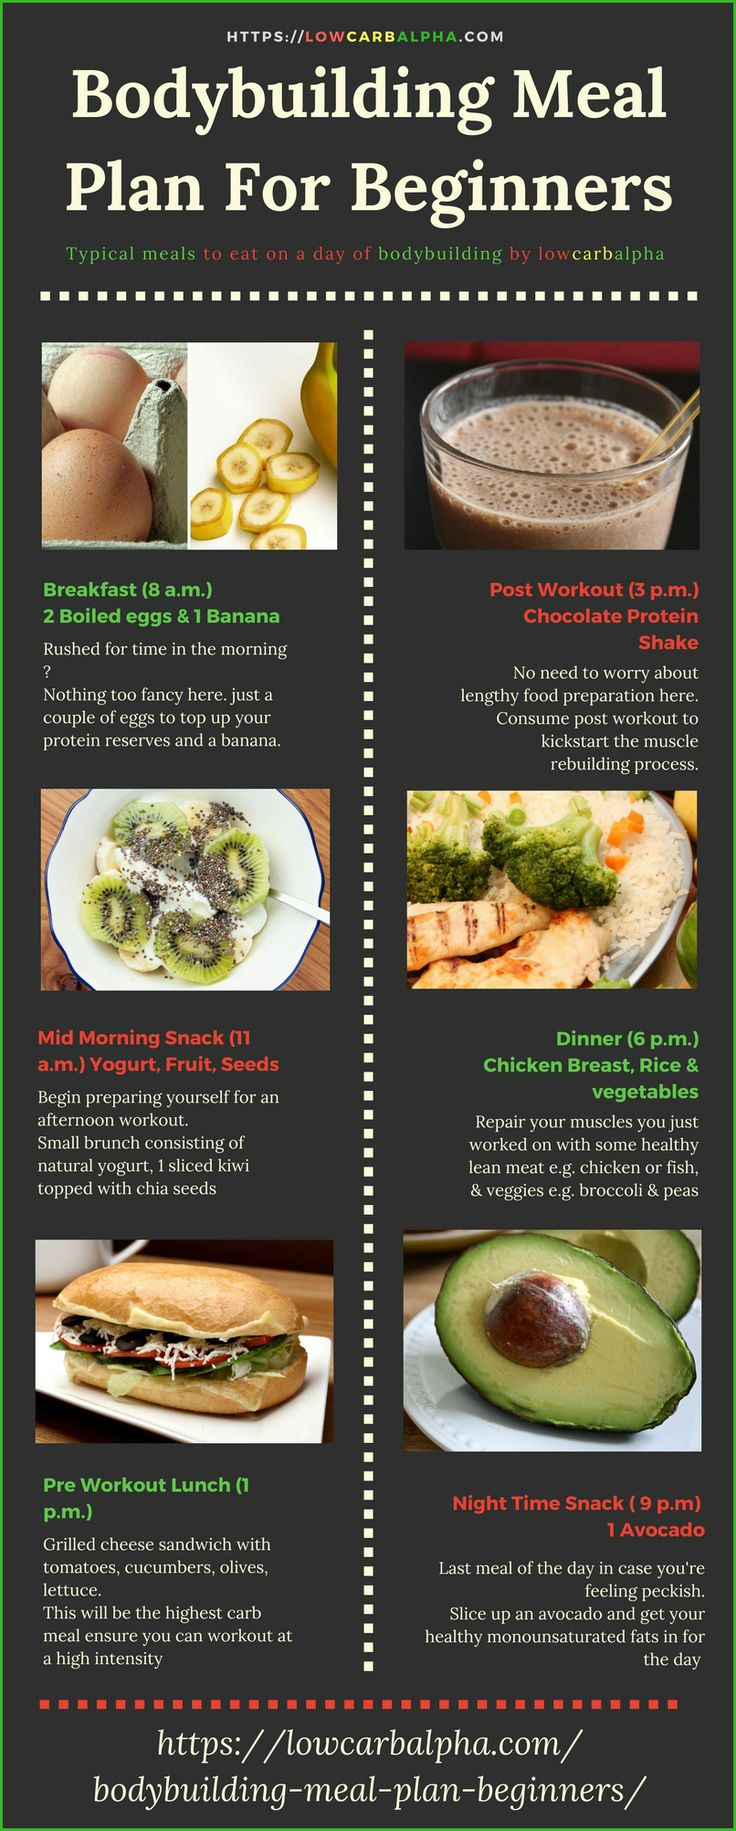 Best Foods For Muscle Building And Toning